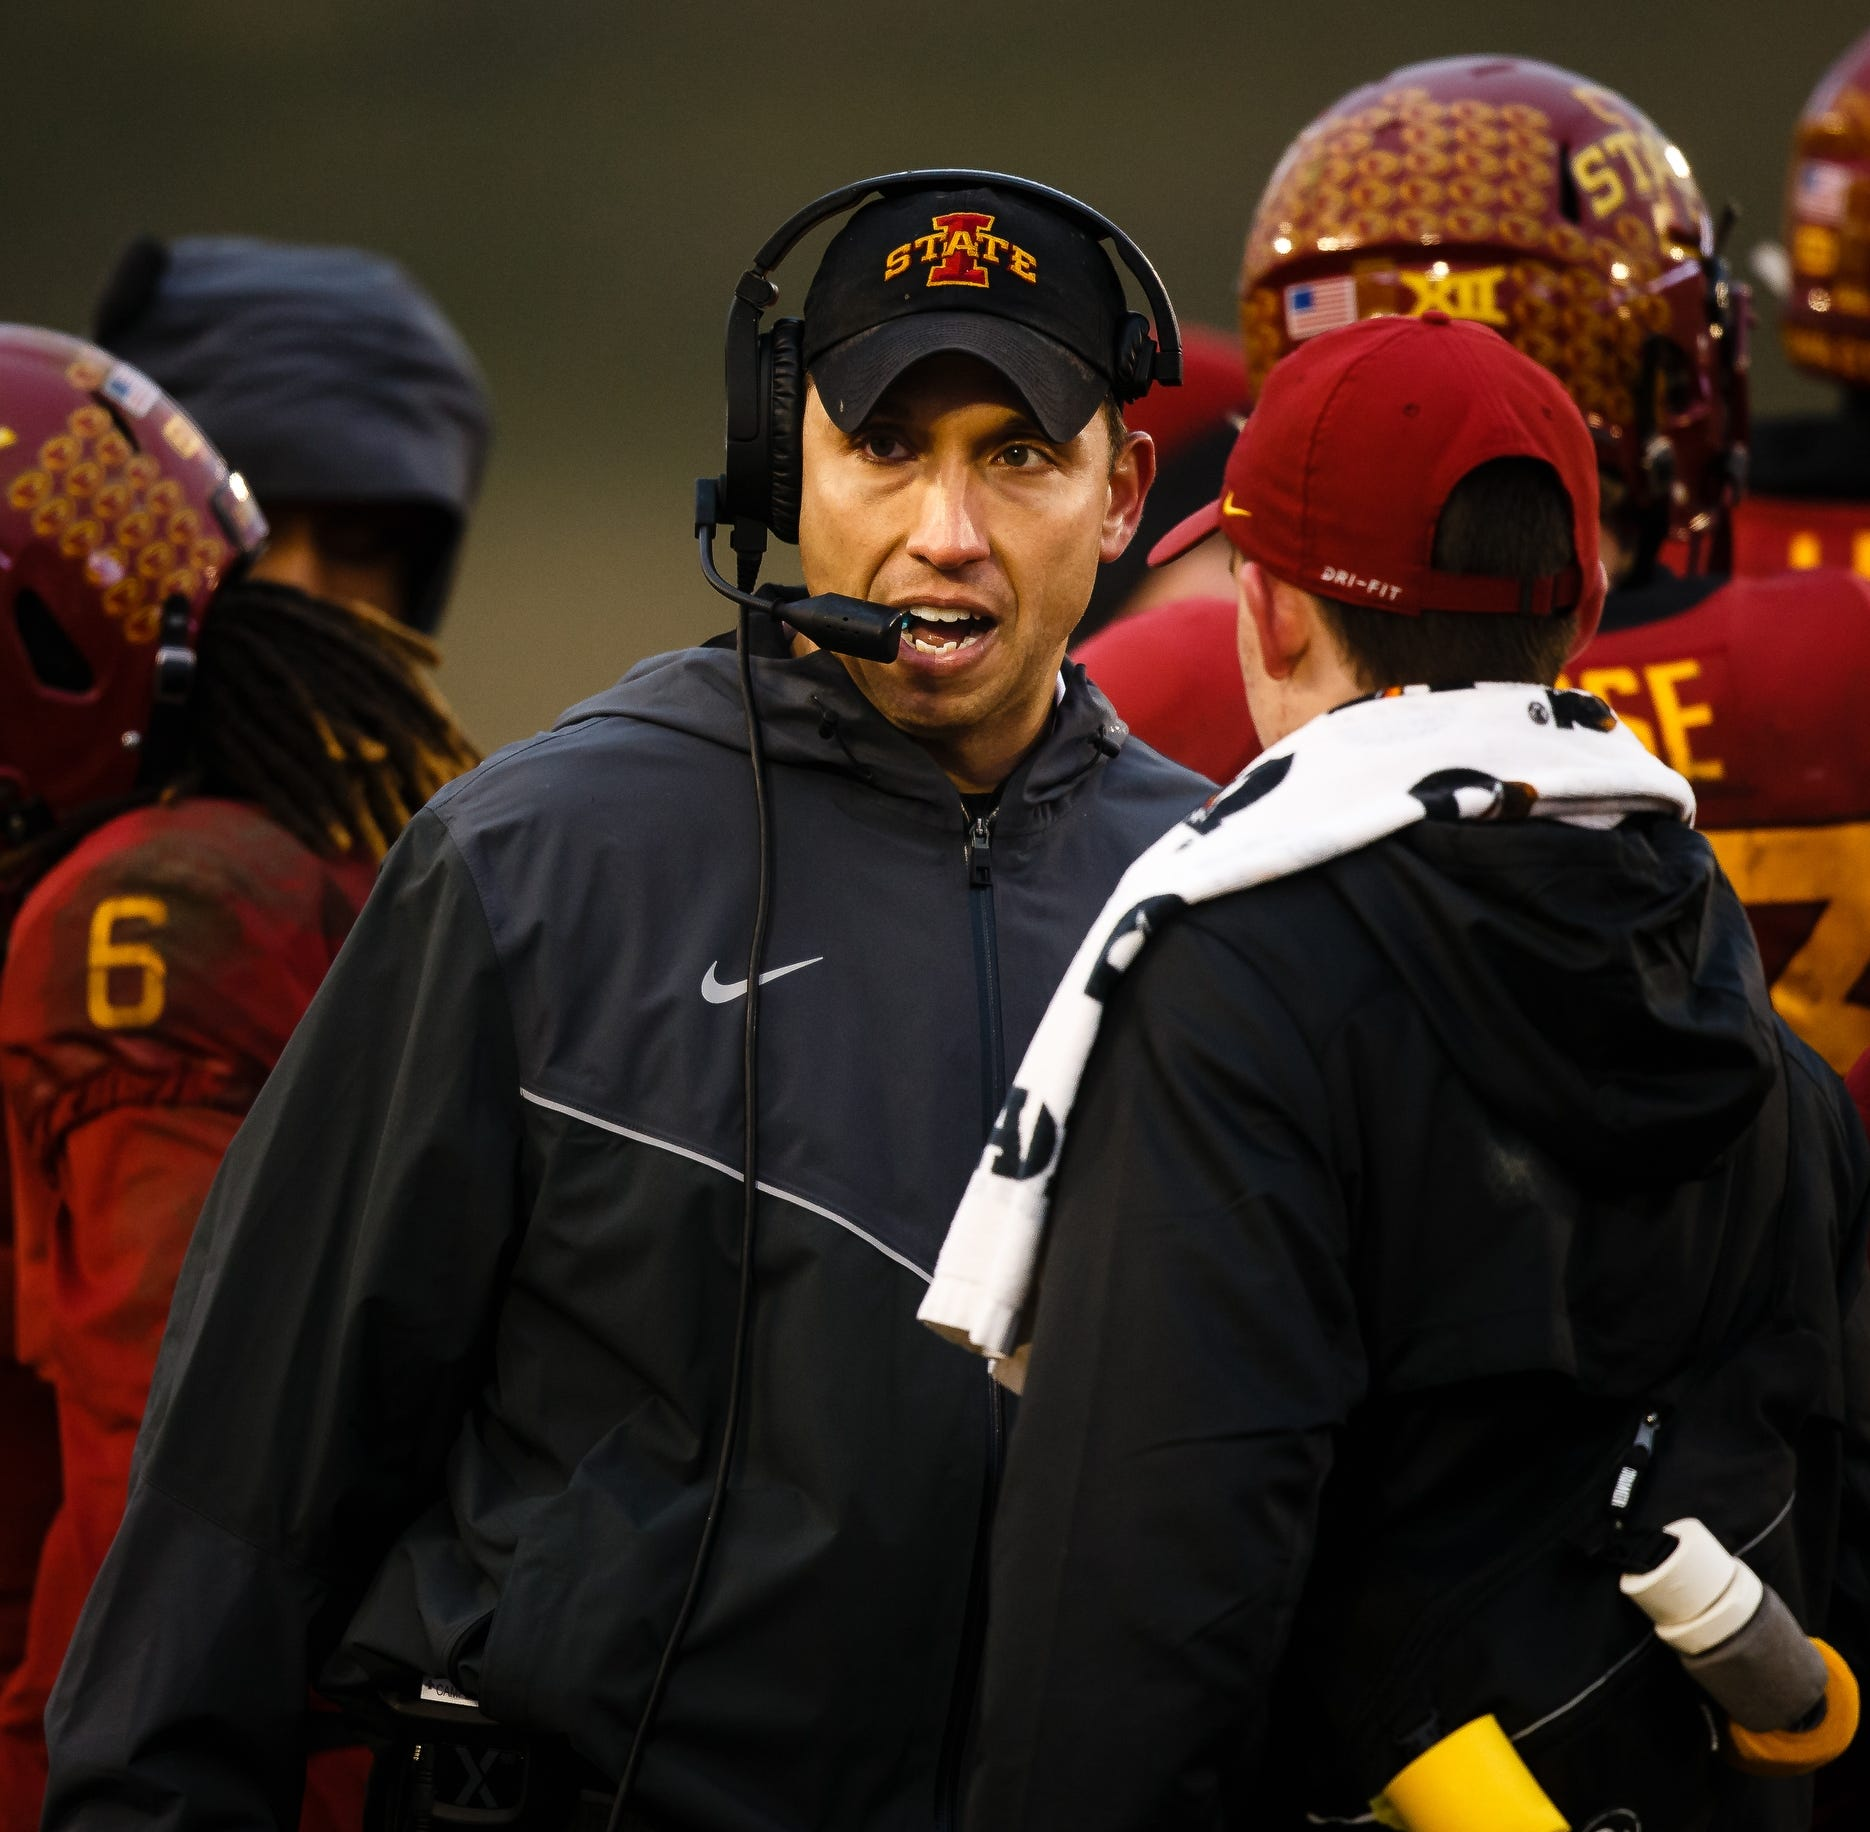 'I think it's another example of what Matt has been saying all along': Iowa State, Matt Campbell sign new contract extension